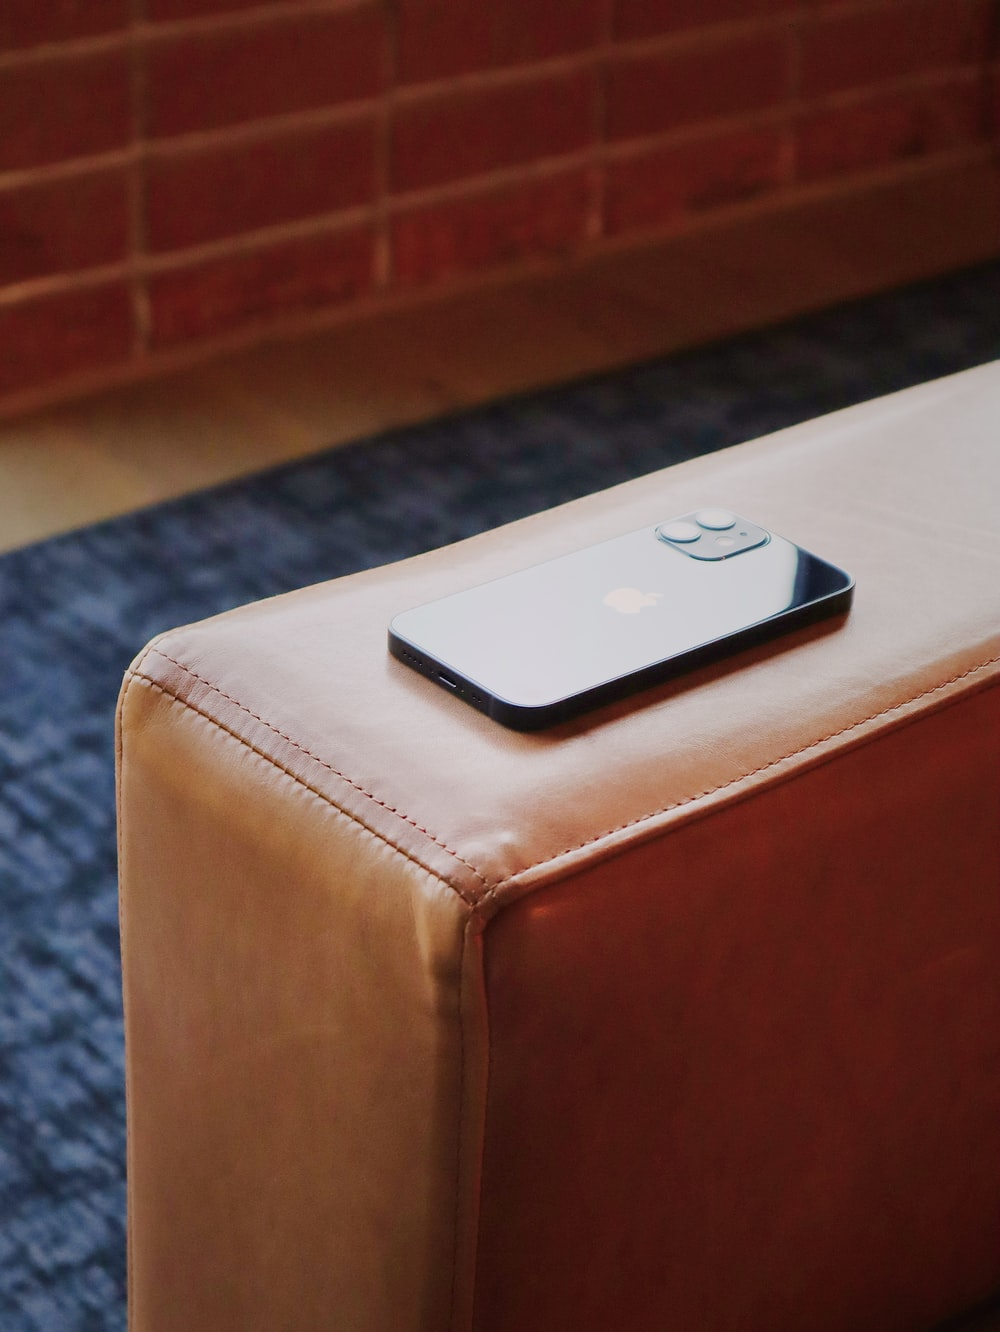 white apple remote on brown leather ottoman